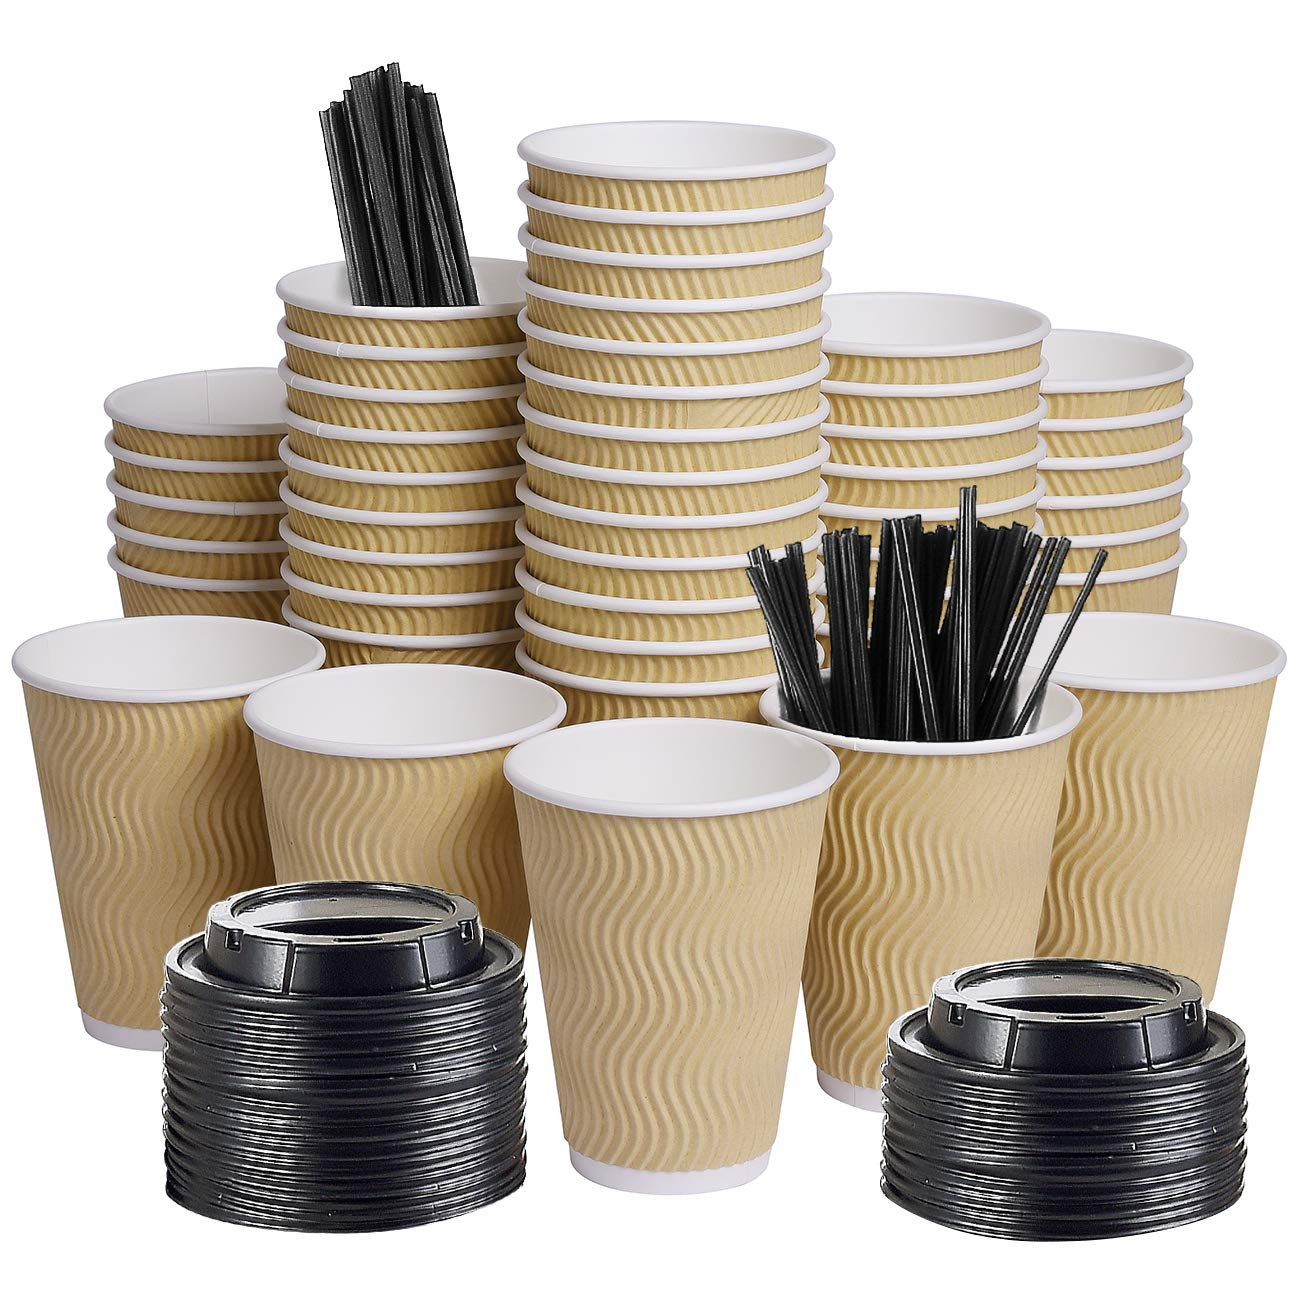 12oz 100 Packs Insulated Kraft Ripple Wall Disposable To Go Paper Coffee Cups for Office Parties Home Travel Corrugated Sleeve Hot Drink Cups with Lids & Straws (Kraft)